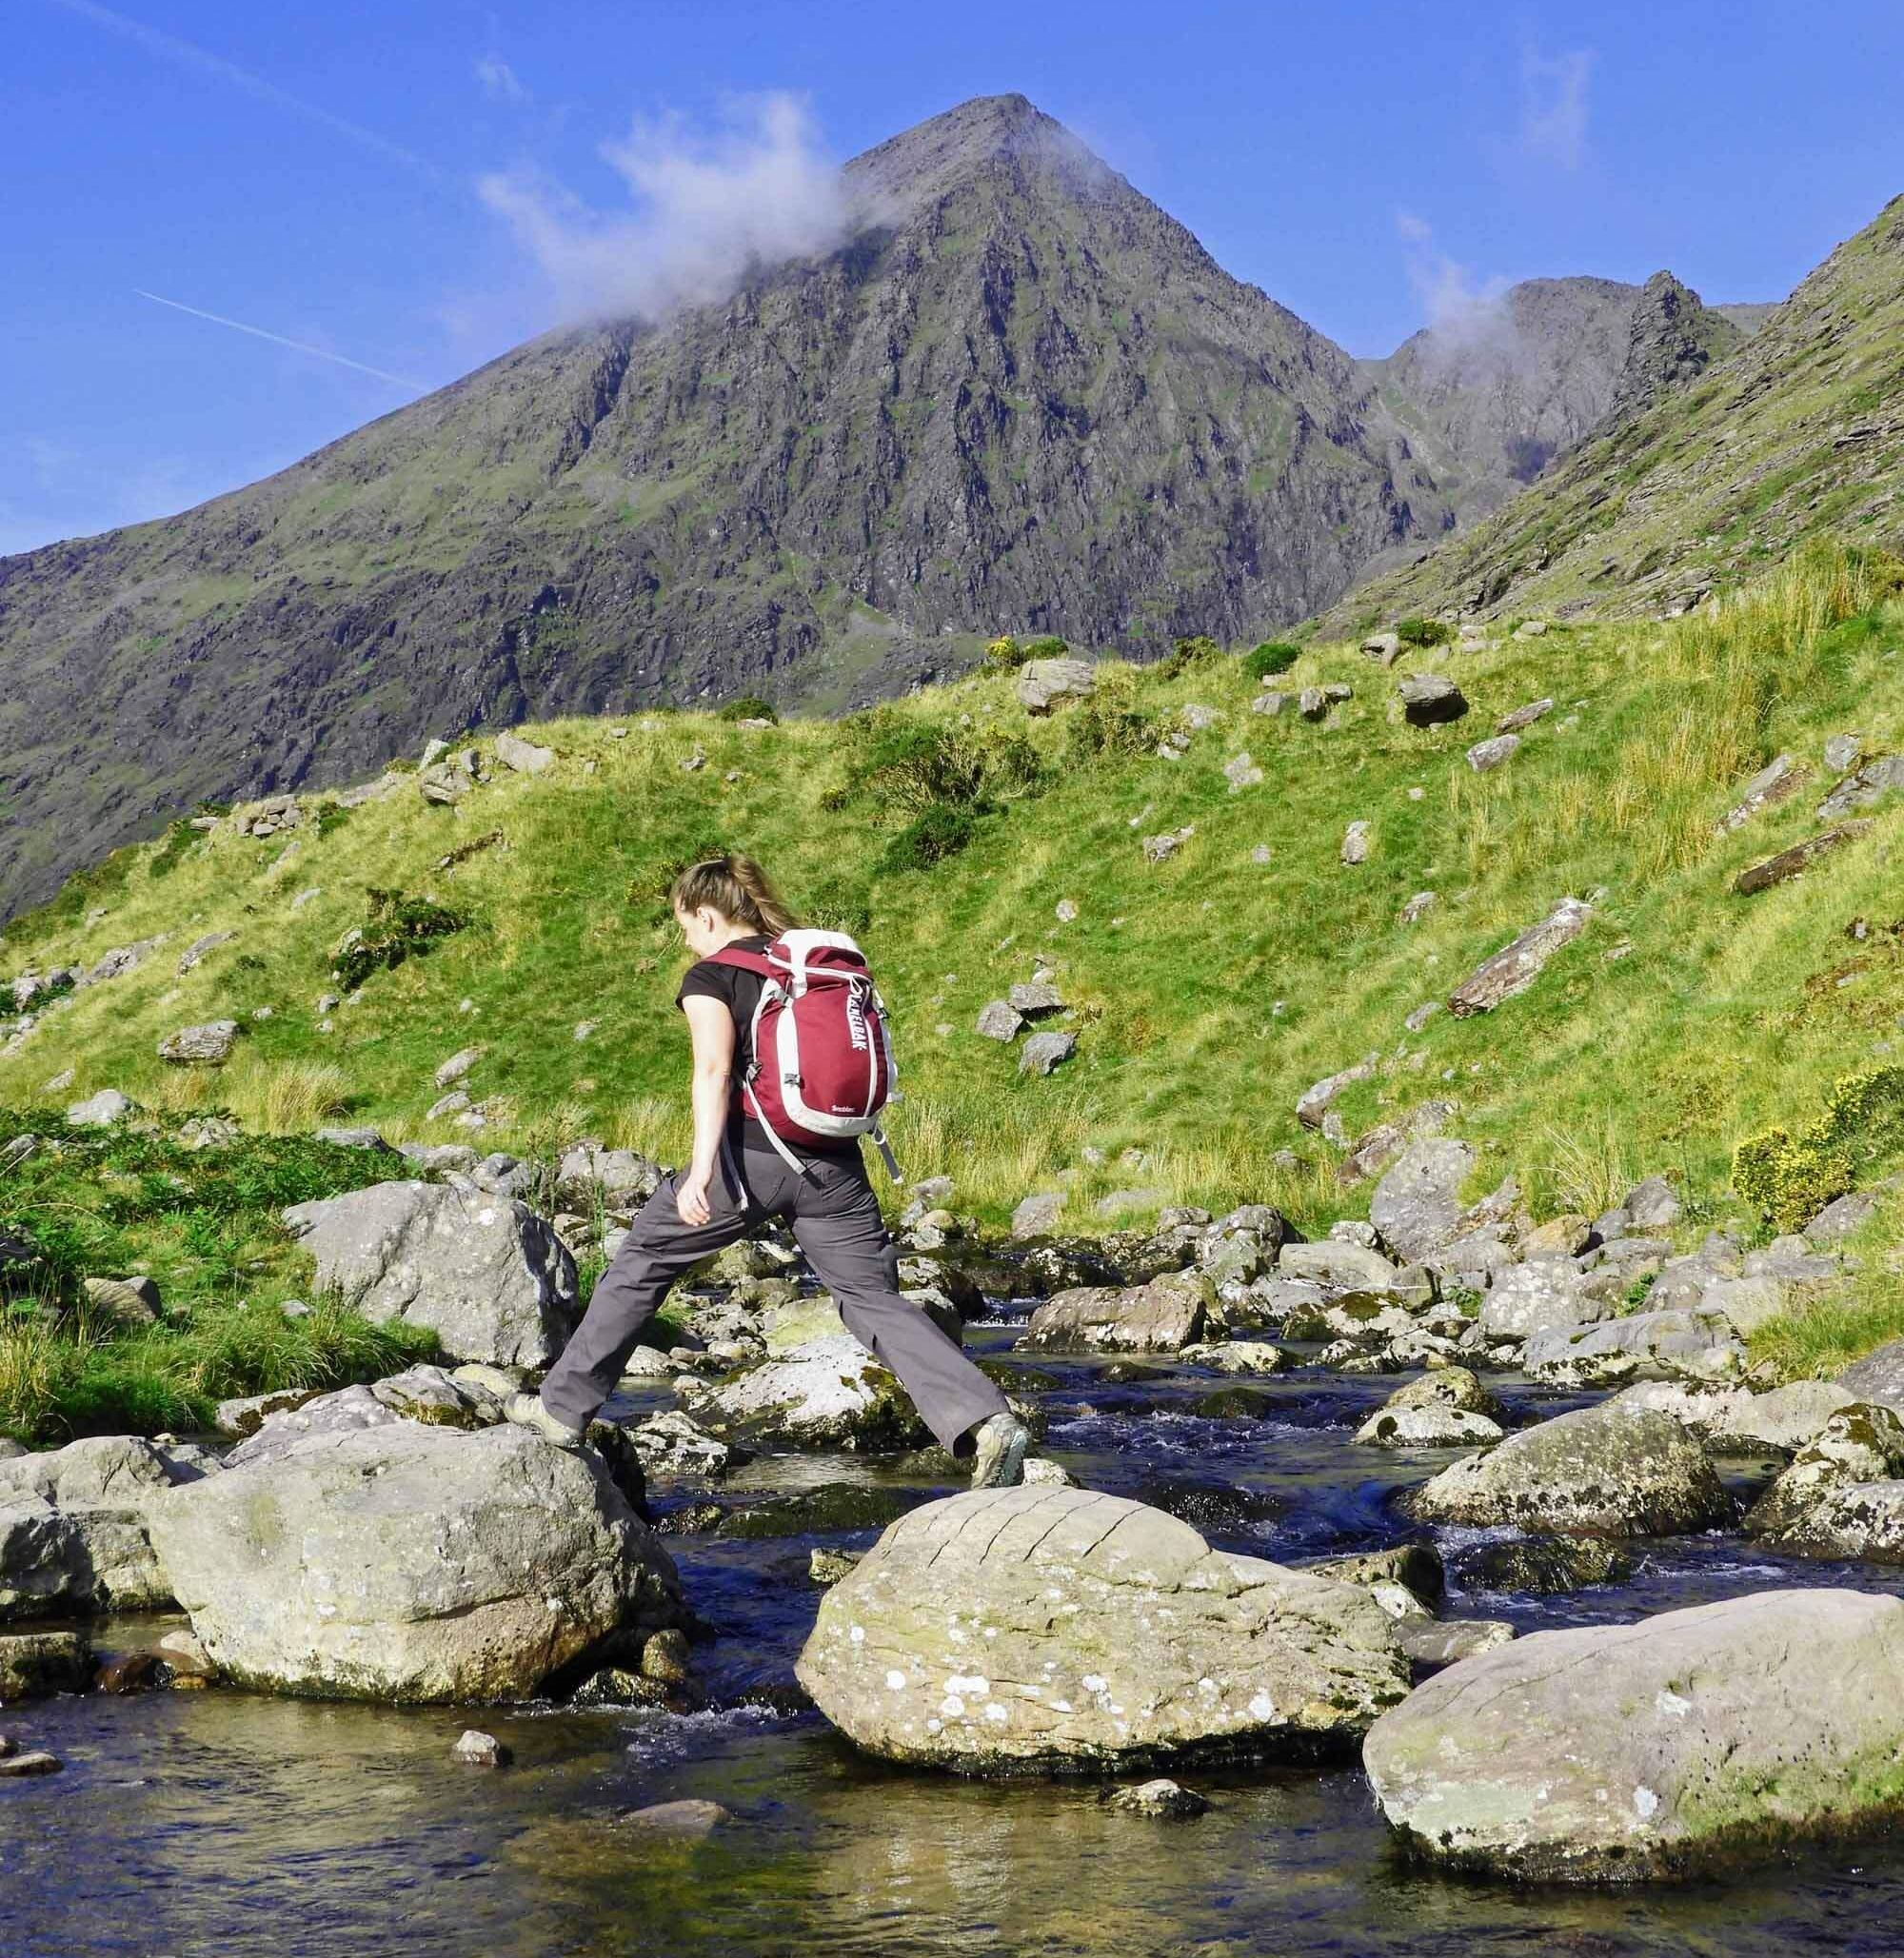 Carrauntoohil Peak - Ireland's highest mountain (1,038 m / 3,406 ft) and one of our very favorite Irish adventures!If you like a good hike, don't miss this one!